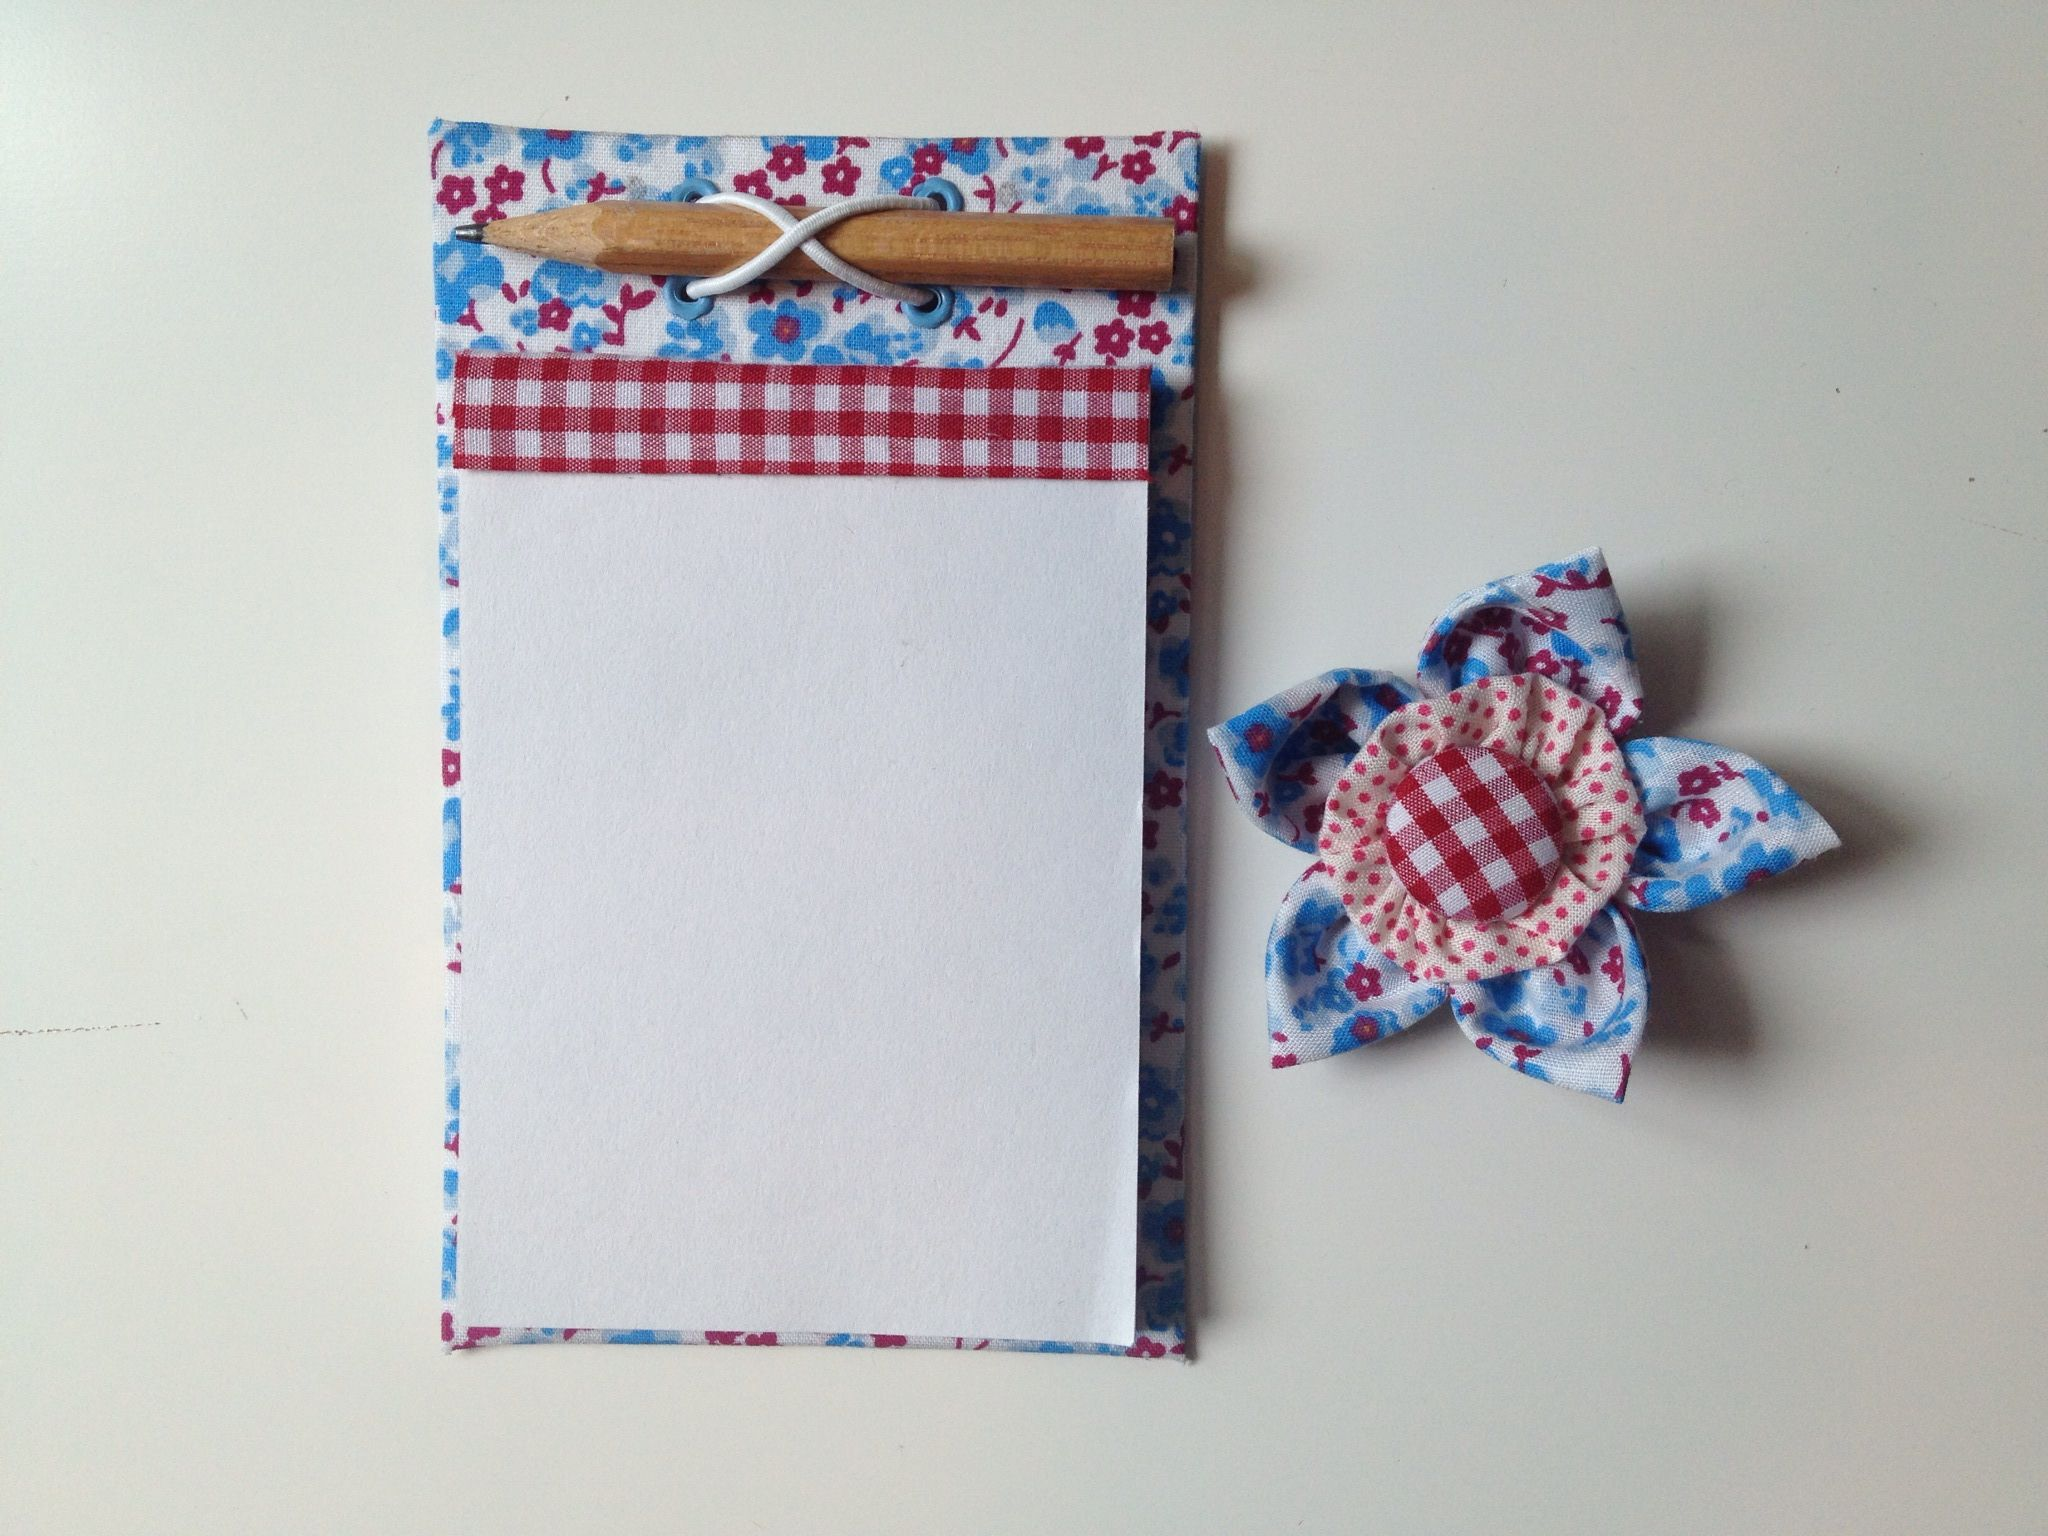 Made with reusable material: milk box and fabric